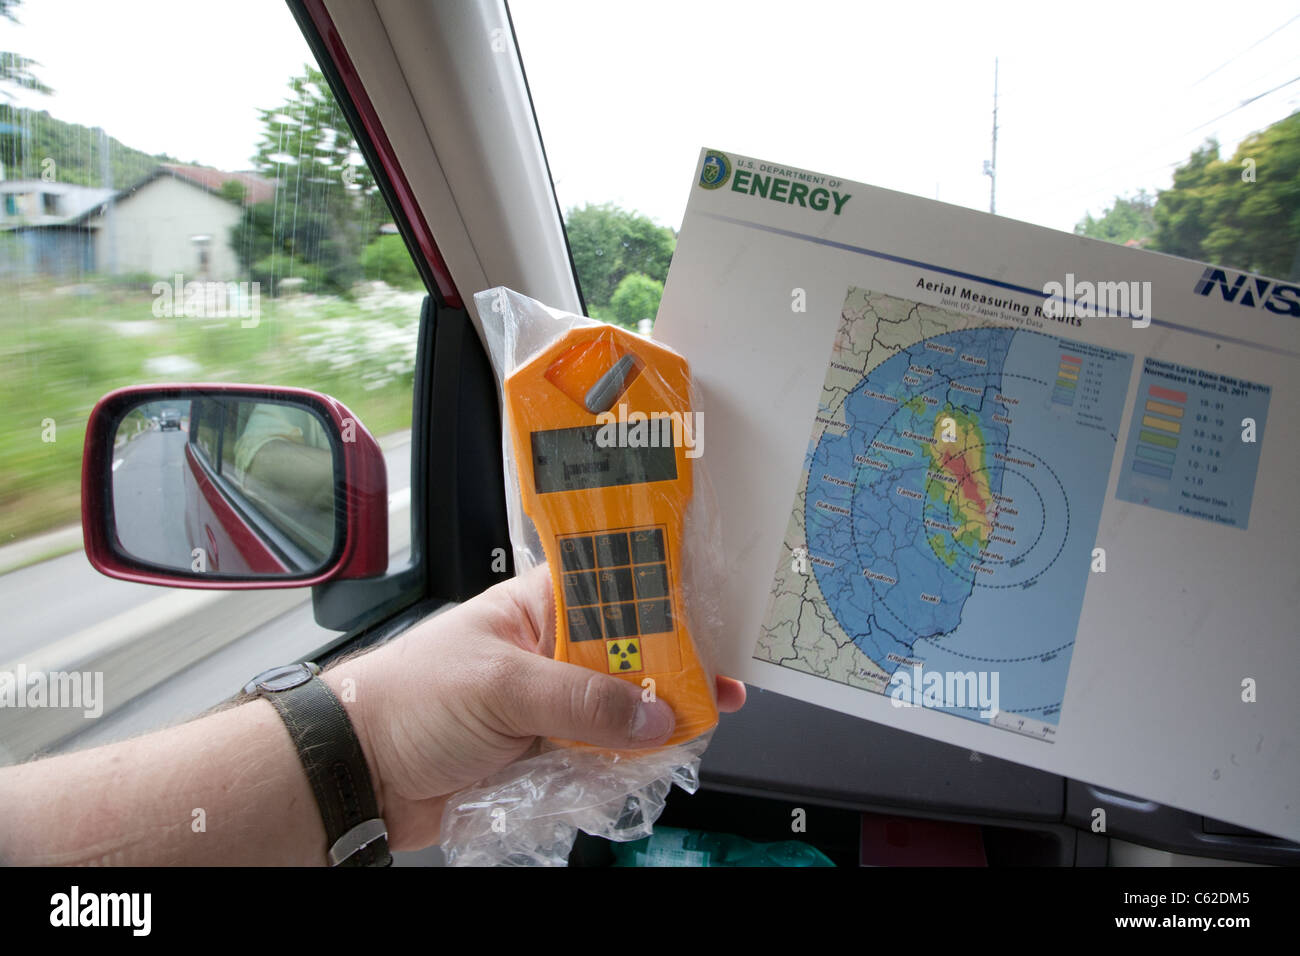 Geiger Counter Stock Photos Images Alamy Diagram Driving Through Fukushima Prefecture Holding And Radiation Map Image